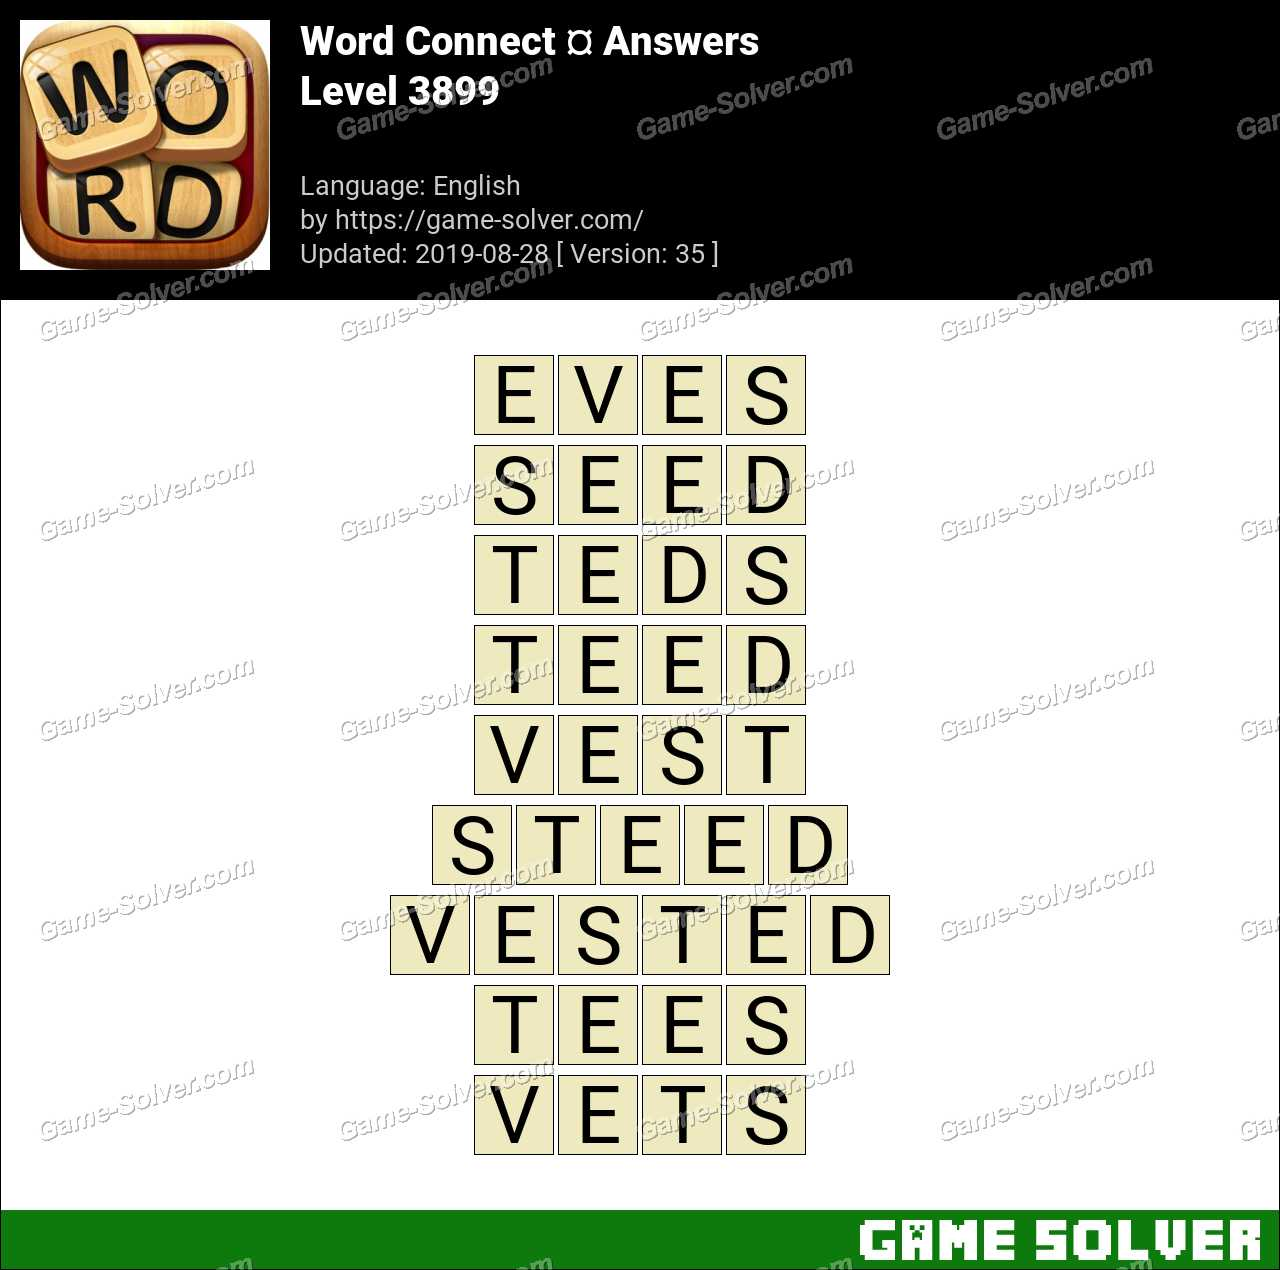 Word Connect Level 3899 Answers